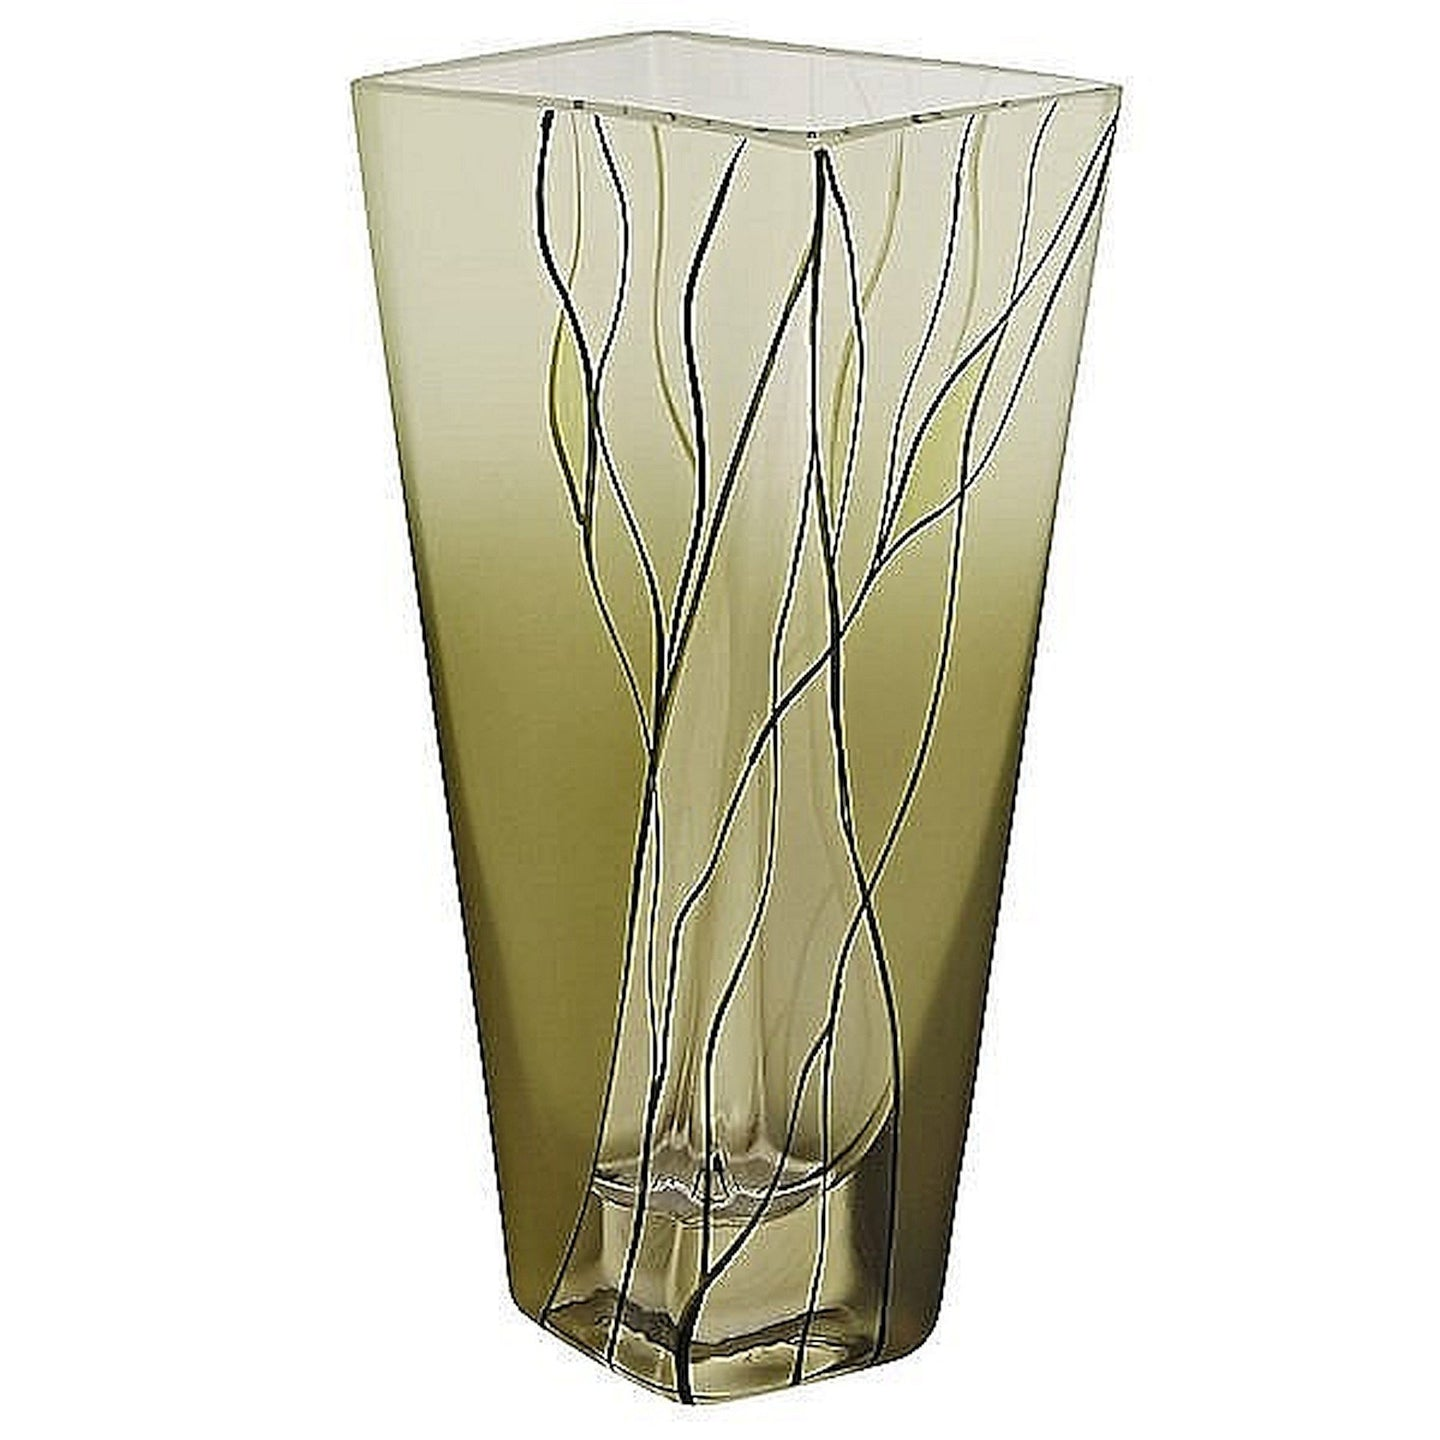 European Green Crystal 8-inch Square Vase - Nature Home Decor